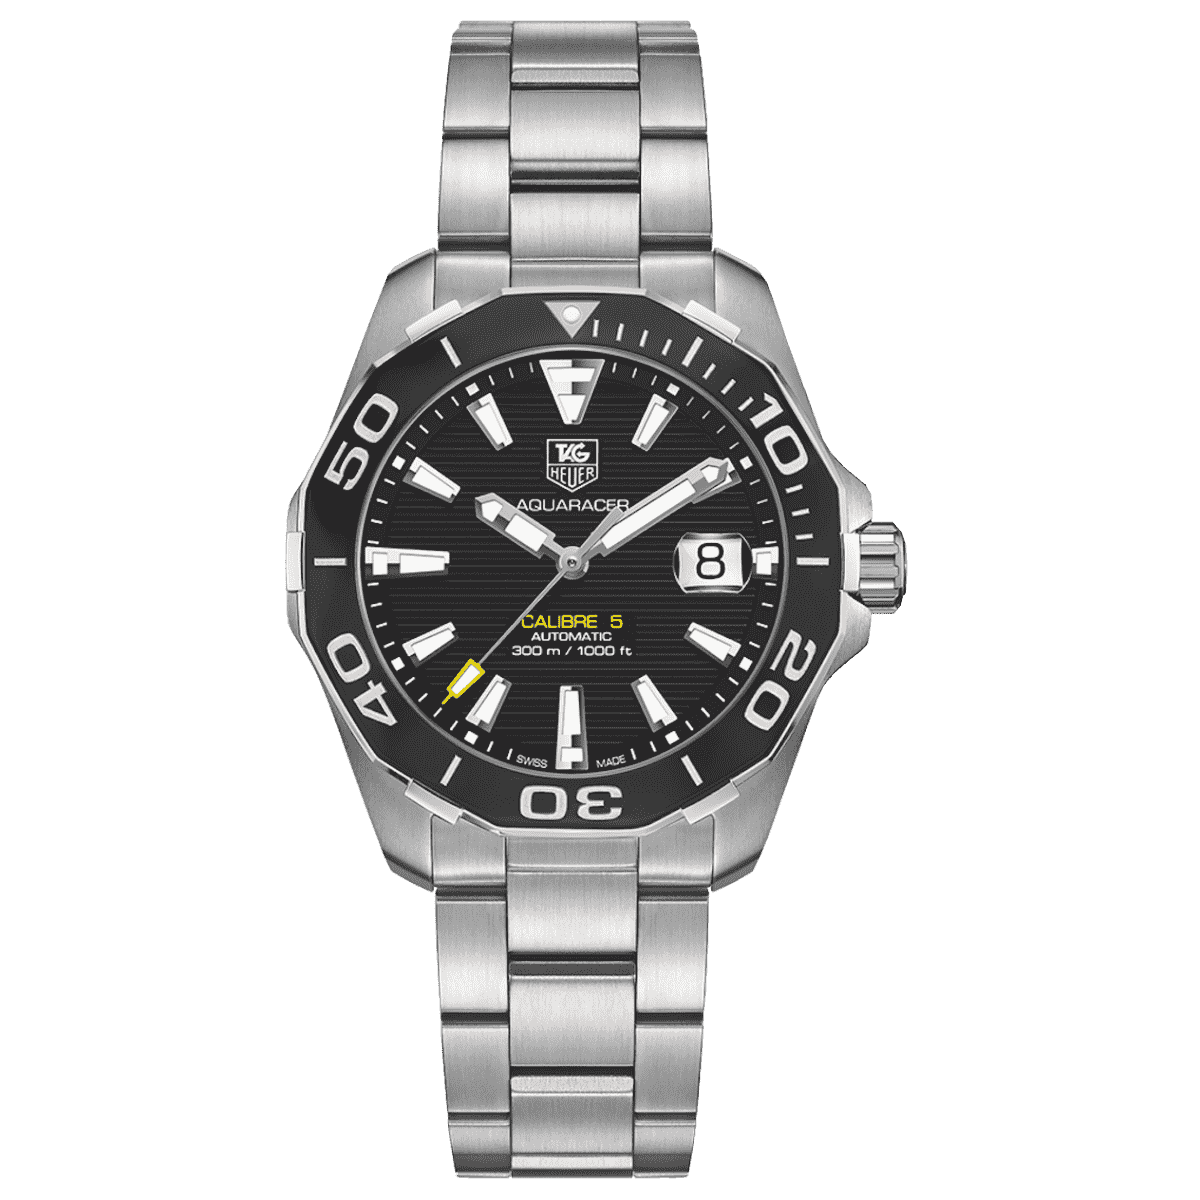 Мужские Часы Aquaracer 300m Calibre 5 Automatic Watch 41 mm